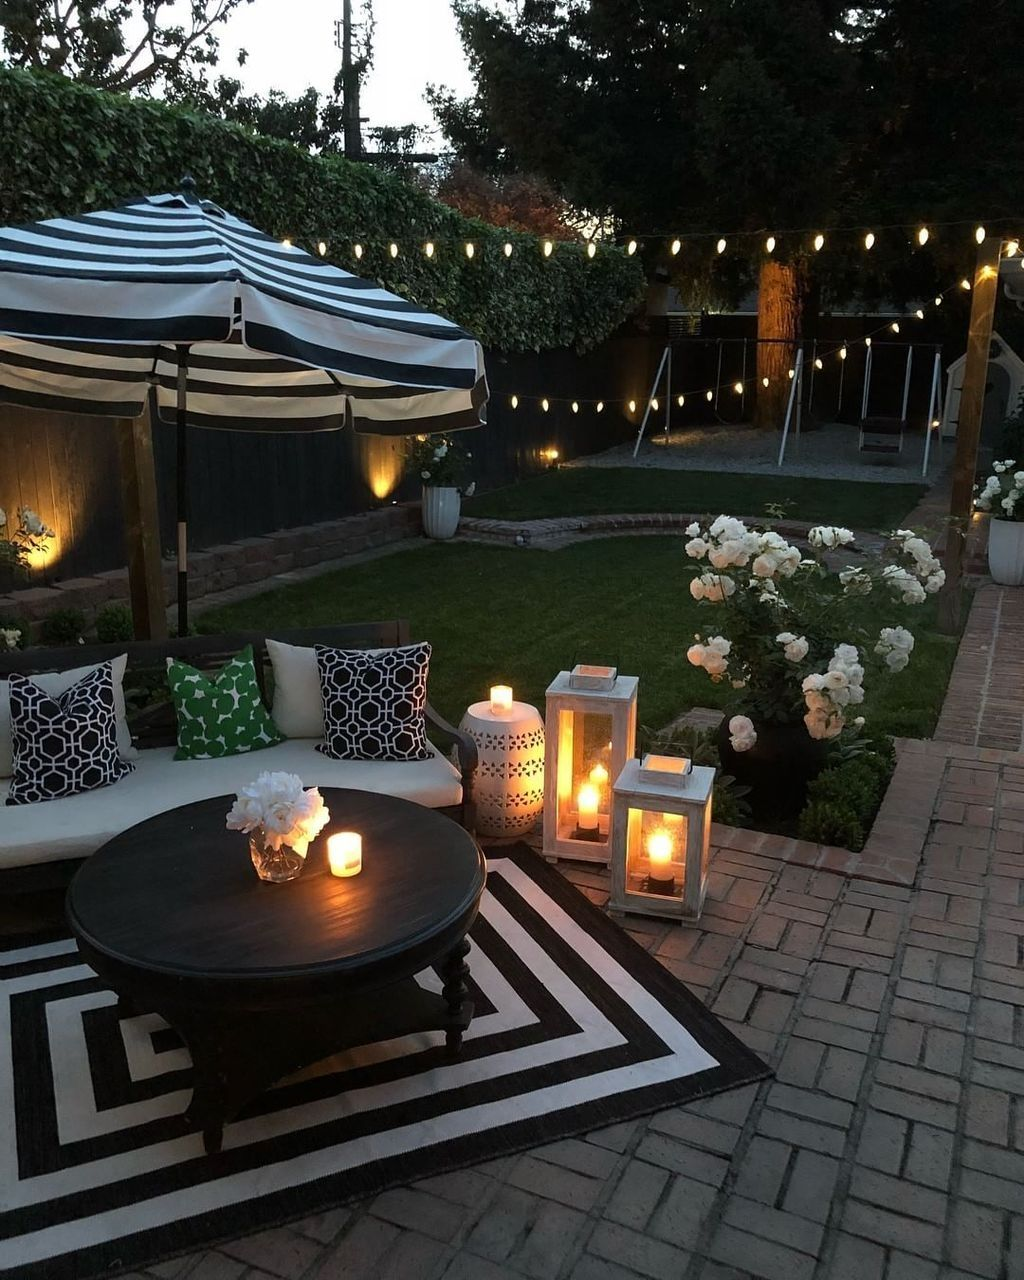 20+ Attractive Small Backyard Design Ideas On A Budget